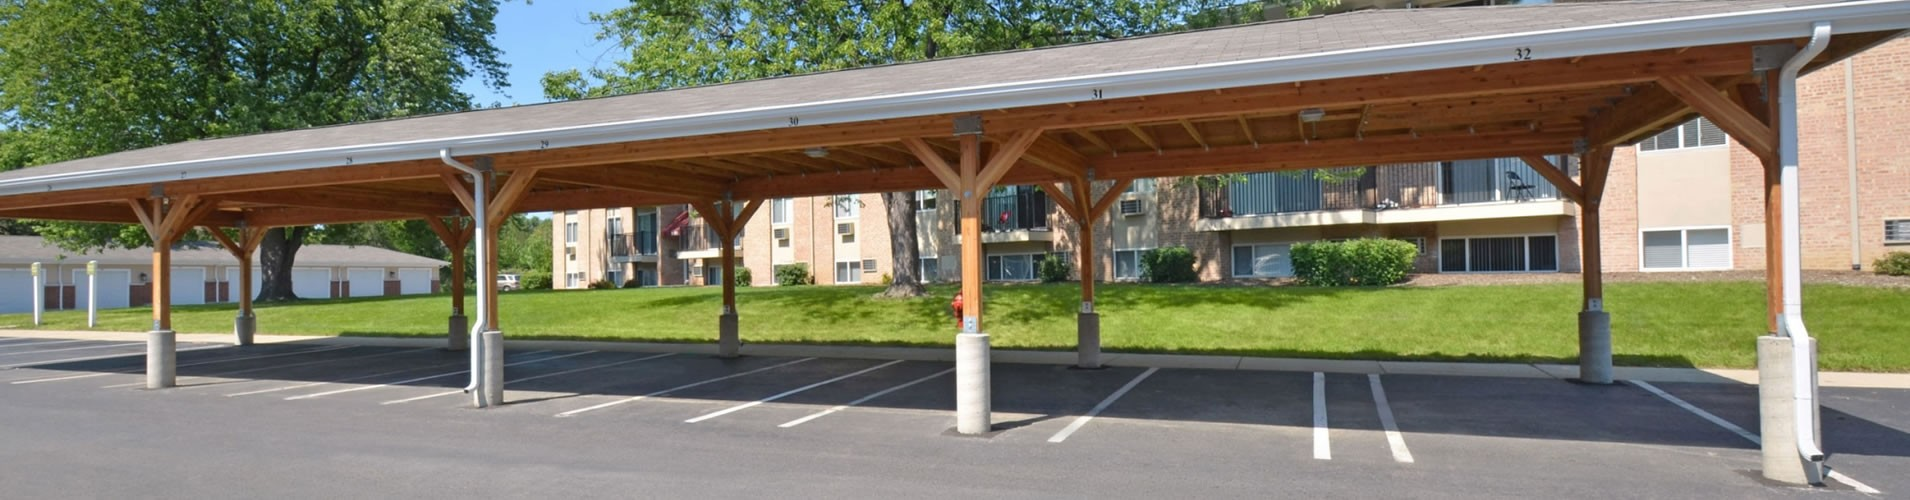 Brentwood Tennessee Carports